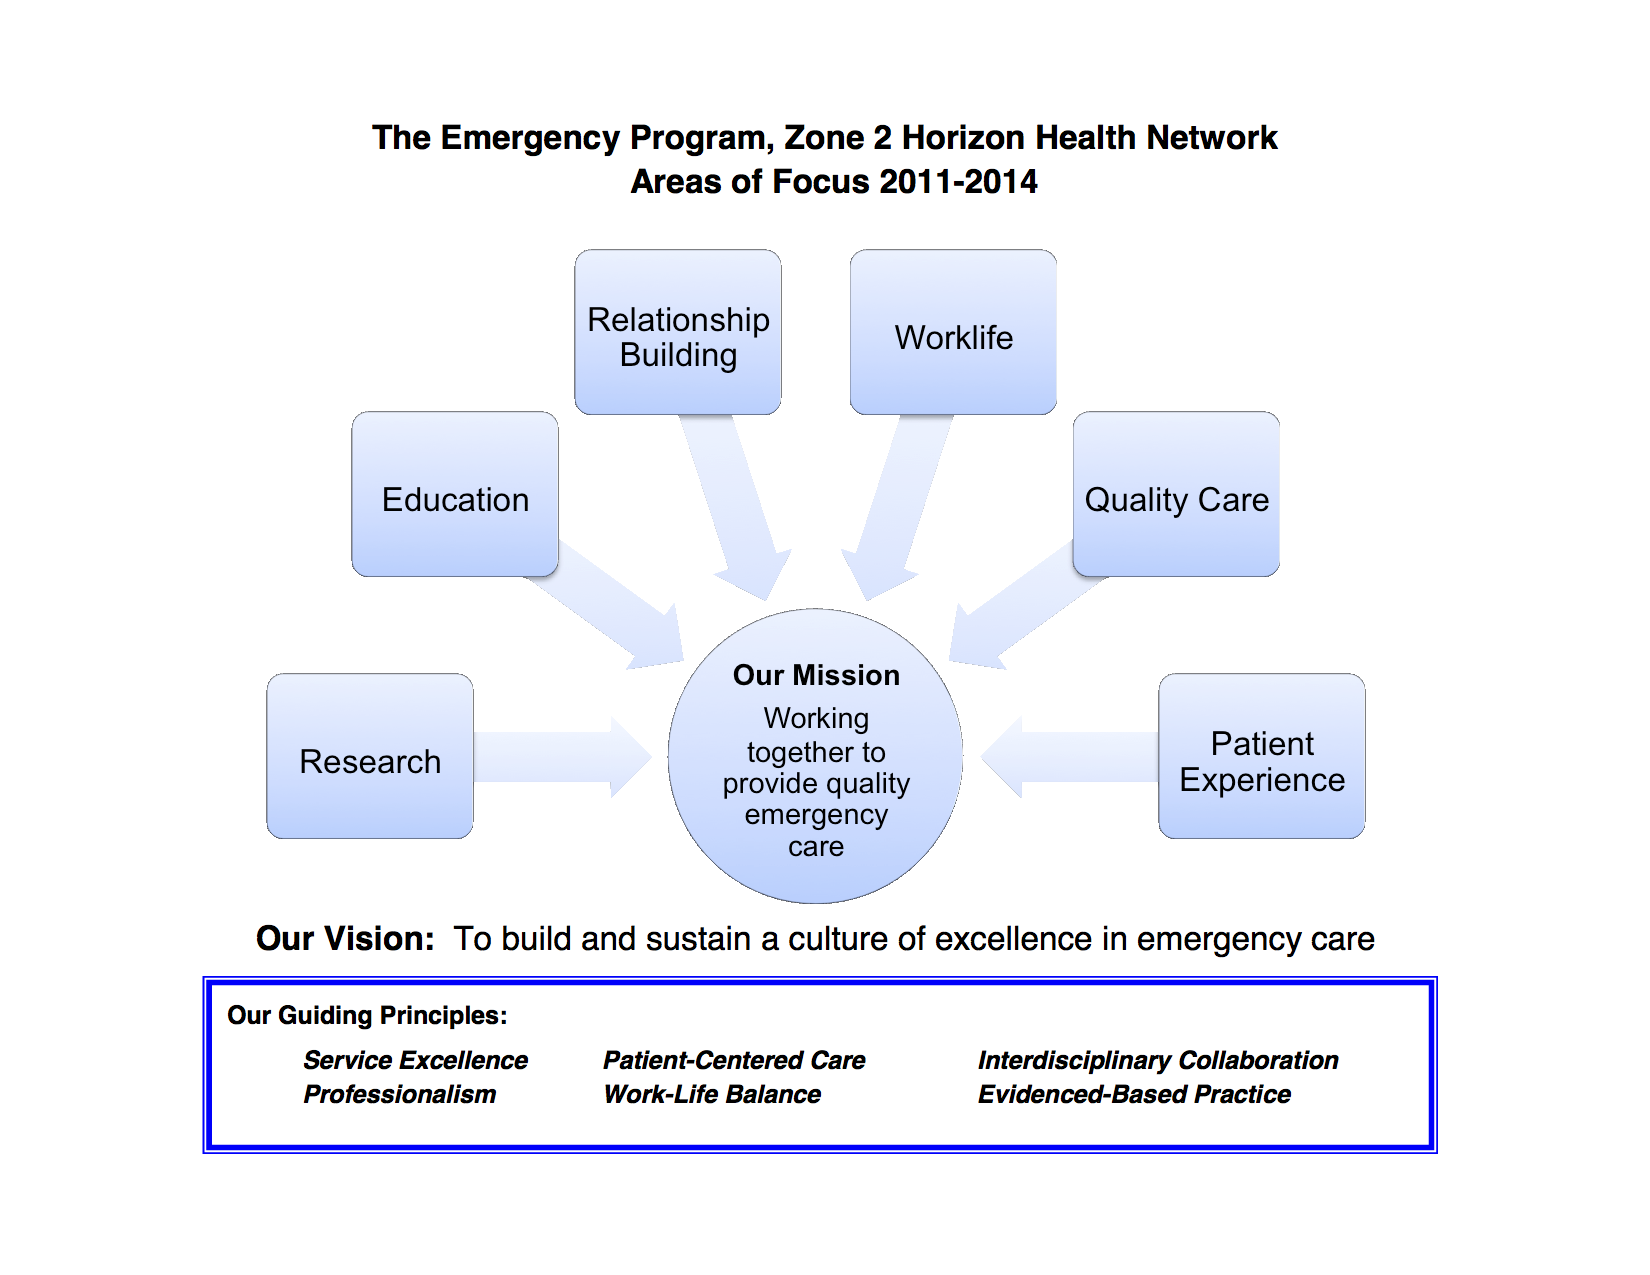 Strategic Plan Emergency Program Horizon Zone 2 2011-14 Summary